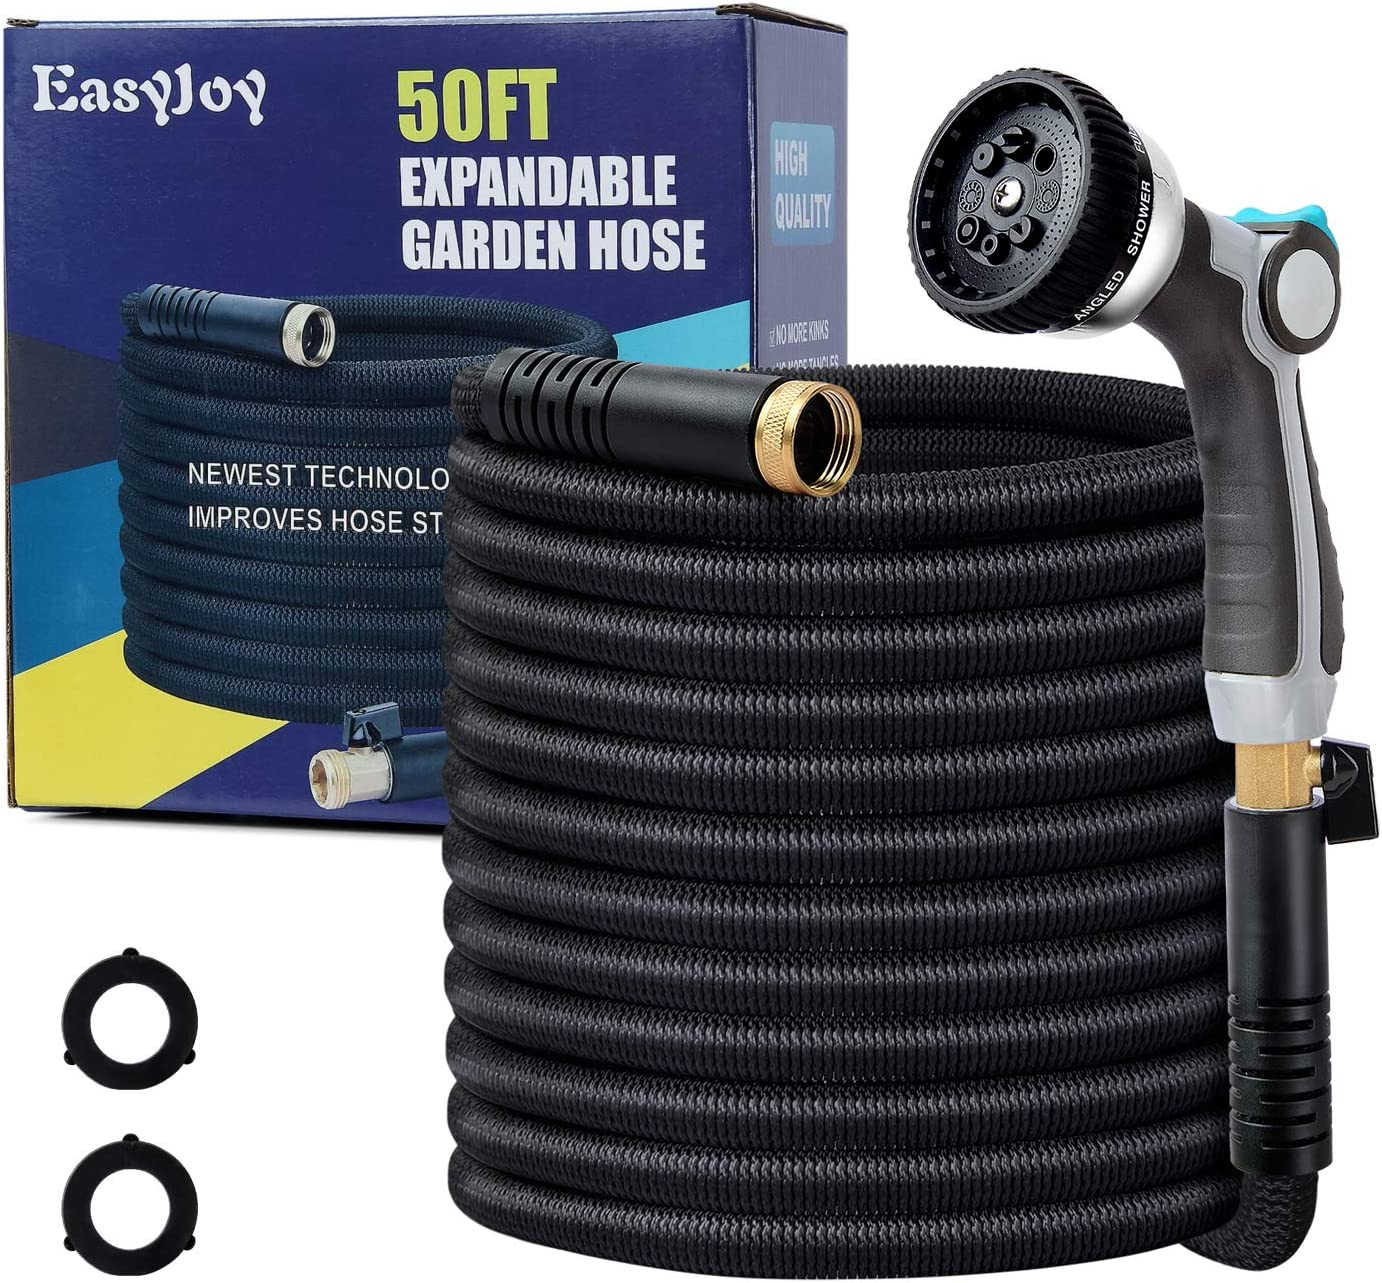 EasyJoy 50FT Expandable Garden Hose - Super Strong 3750D Fabric - 4-Layers Flex Strong Latex – Your Best Choice for Watering and Washing (with Metal 8 Function Sprayer)